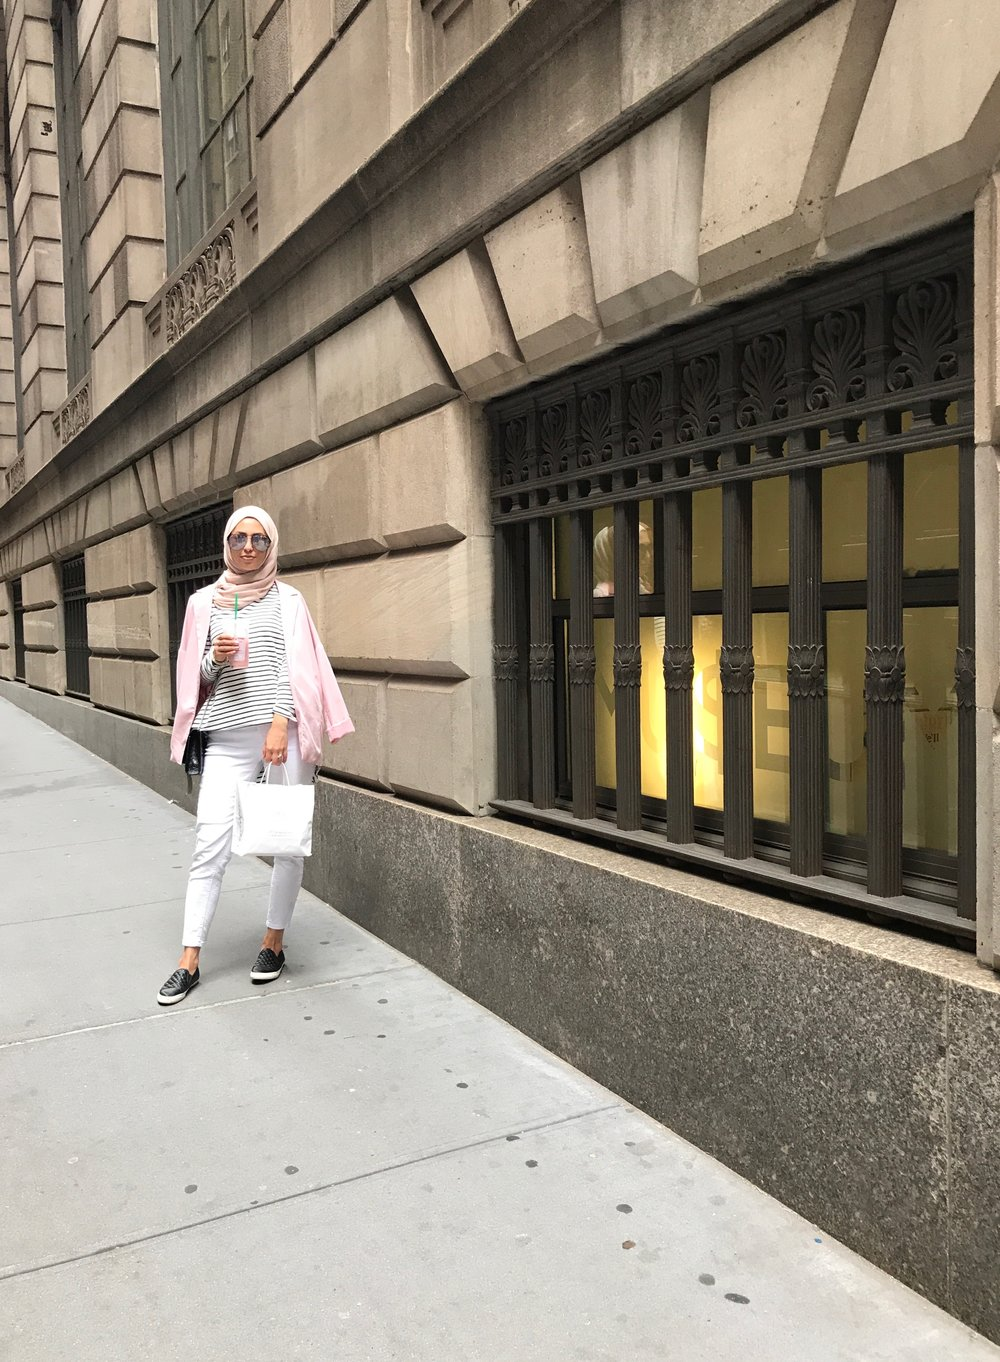 WHEN IN NYC, walking is required so comfortable shoes are a must!  Blazer: Forever 21  Striped Top: Verona Collection  White jeans: Forever 21  Shoes: Geox